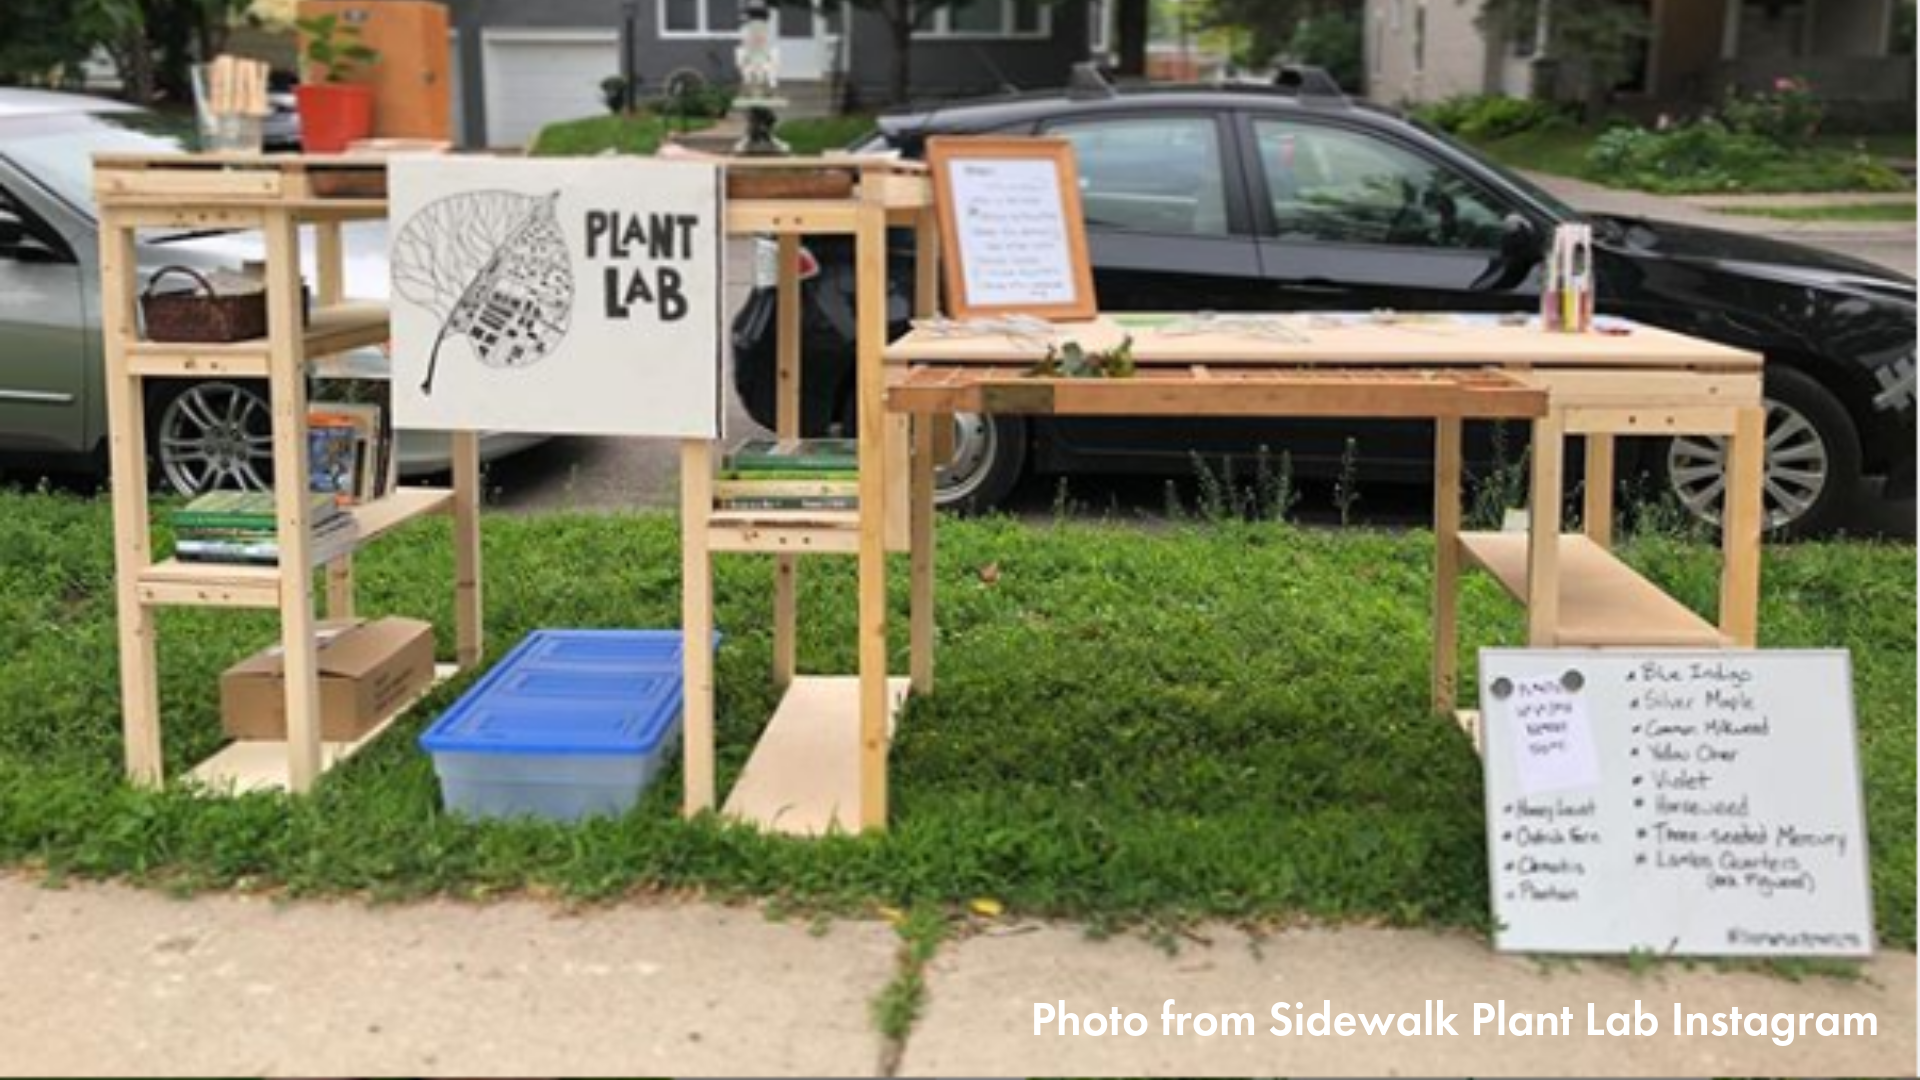 Sidewalk plant lab set up